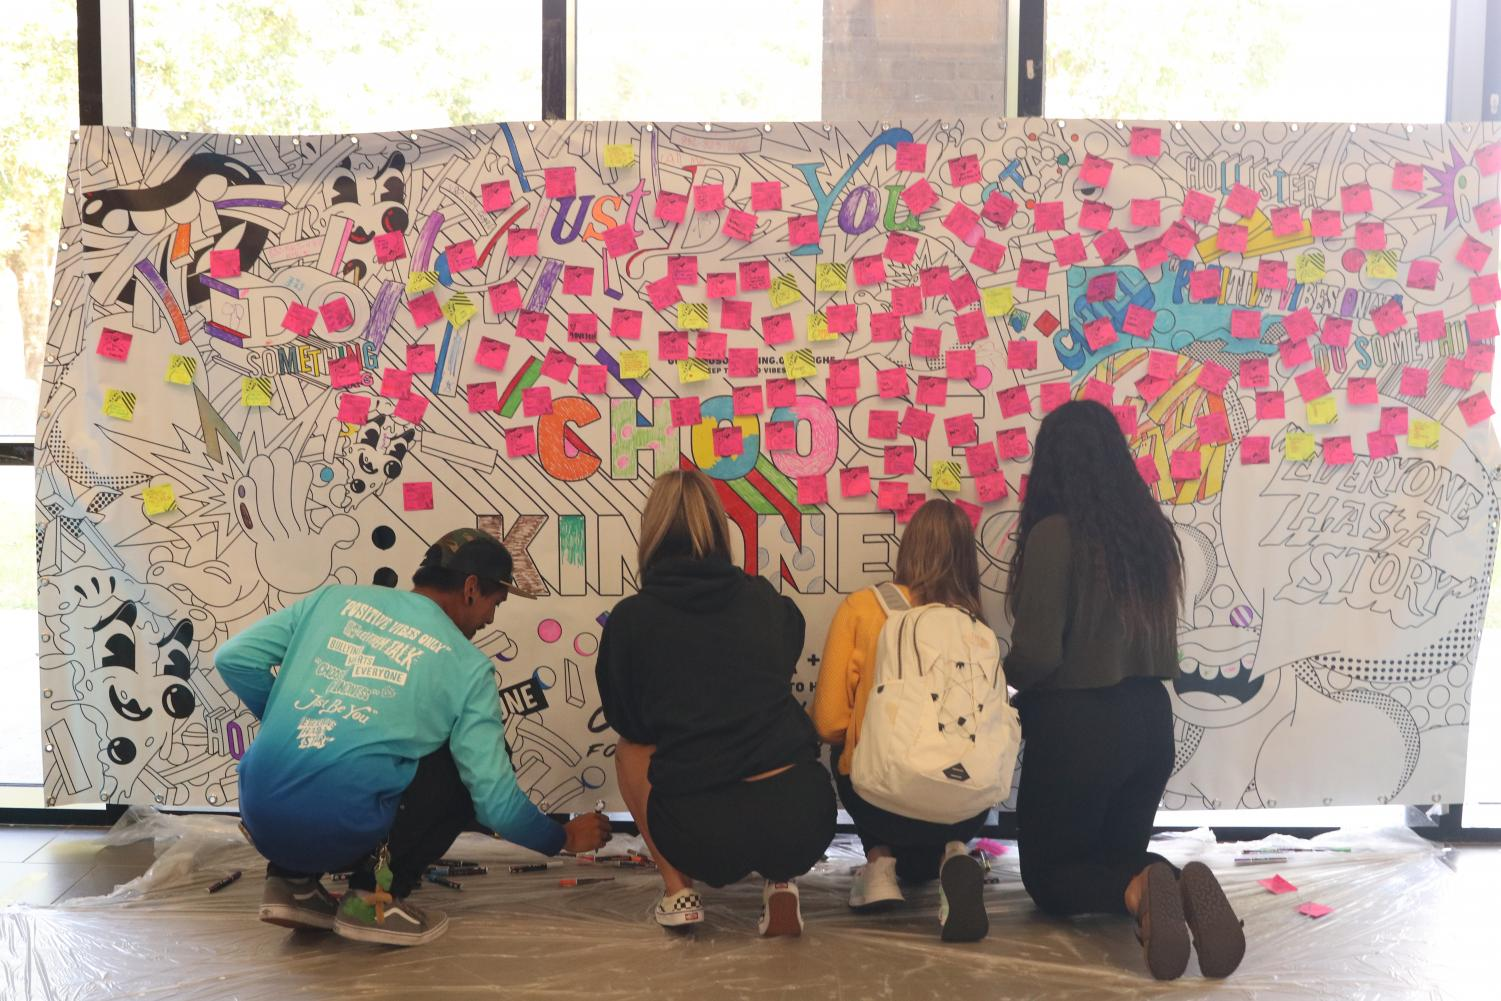 The High School Nation poster displays positive bright messages for people to put on and take.